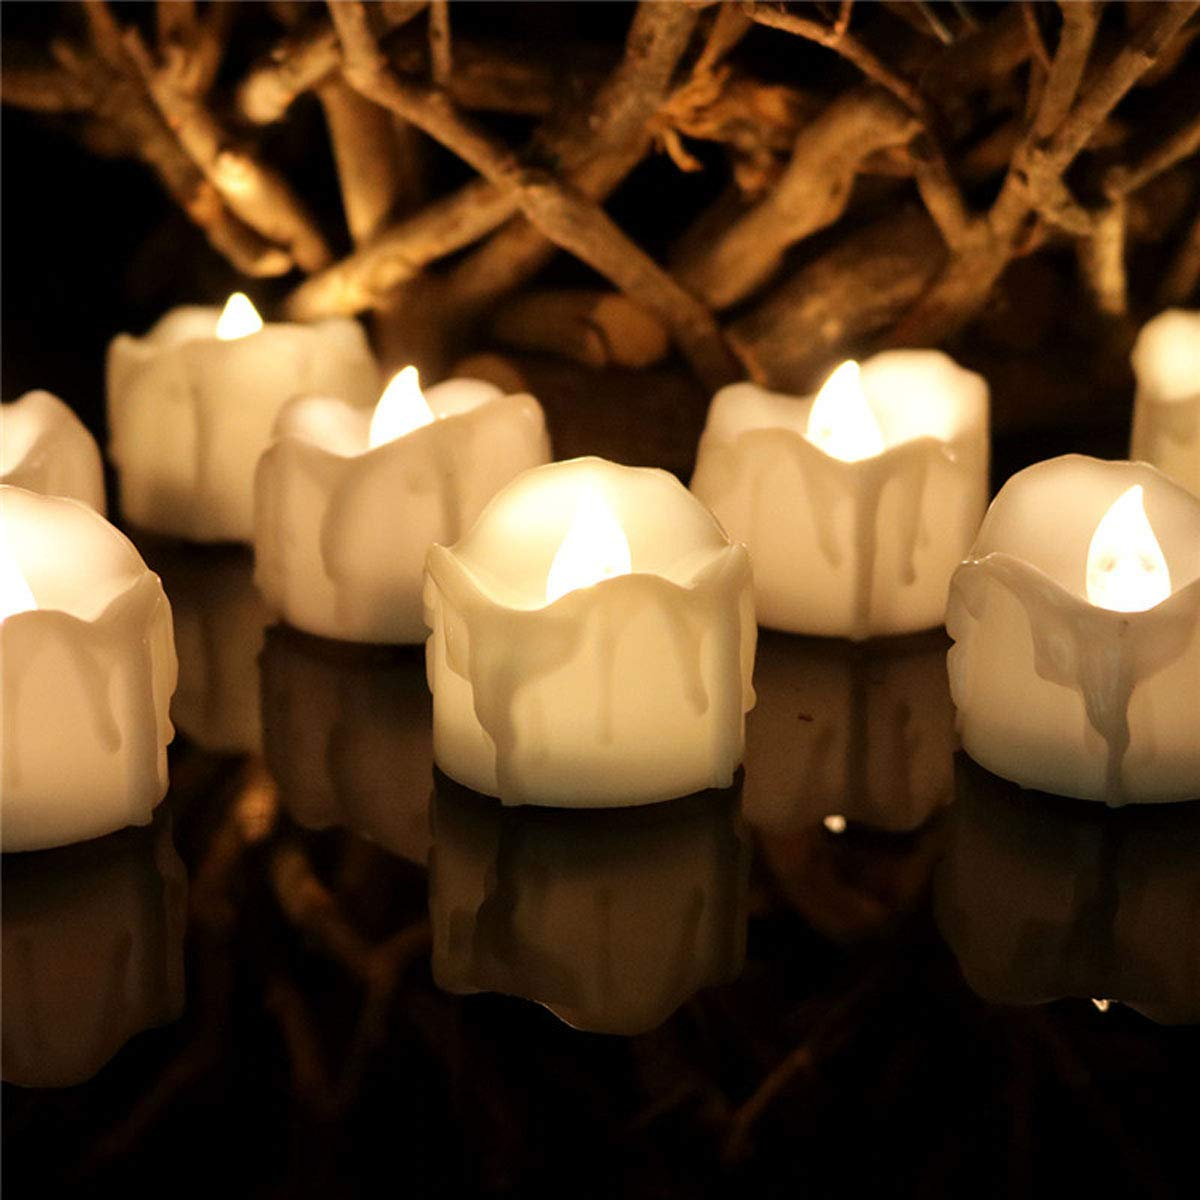 Dellukee Cute Flameless Candles with Timer Drop Tear White Realistic Bright LED Tea Lights Candle for Wedding Birthday Party Decoration, Pack of 12, Electric Fake Candle in Warm White